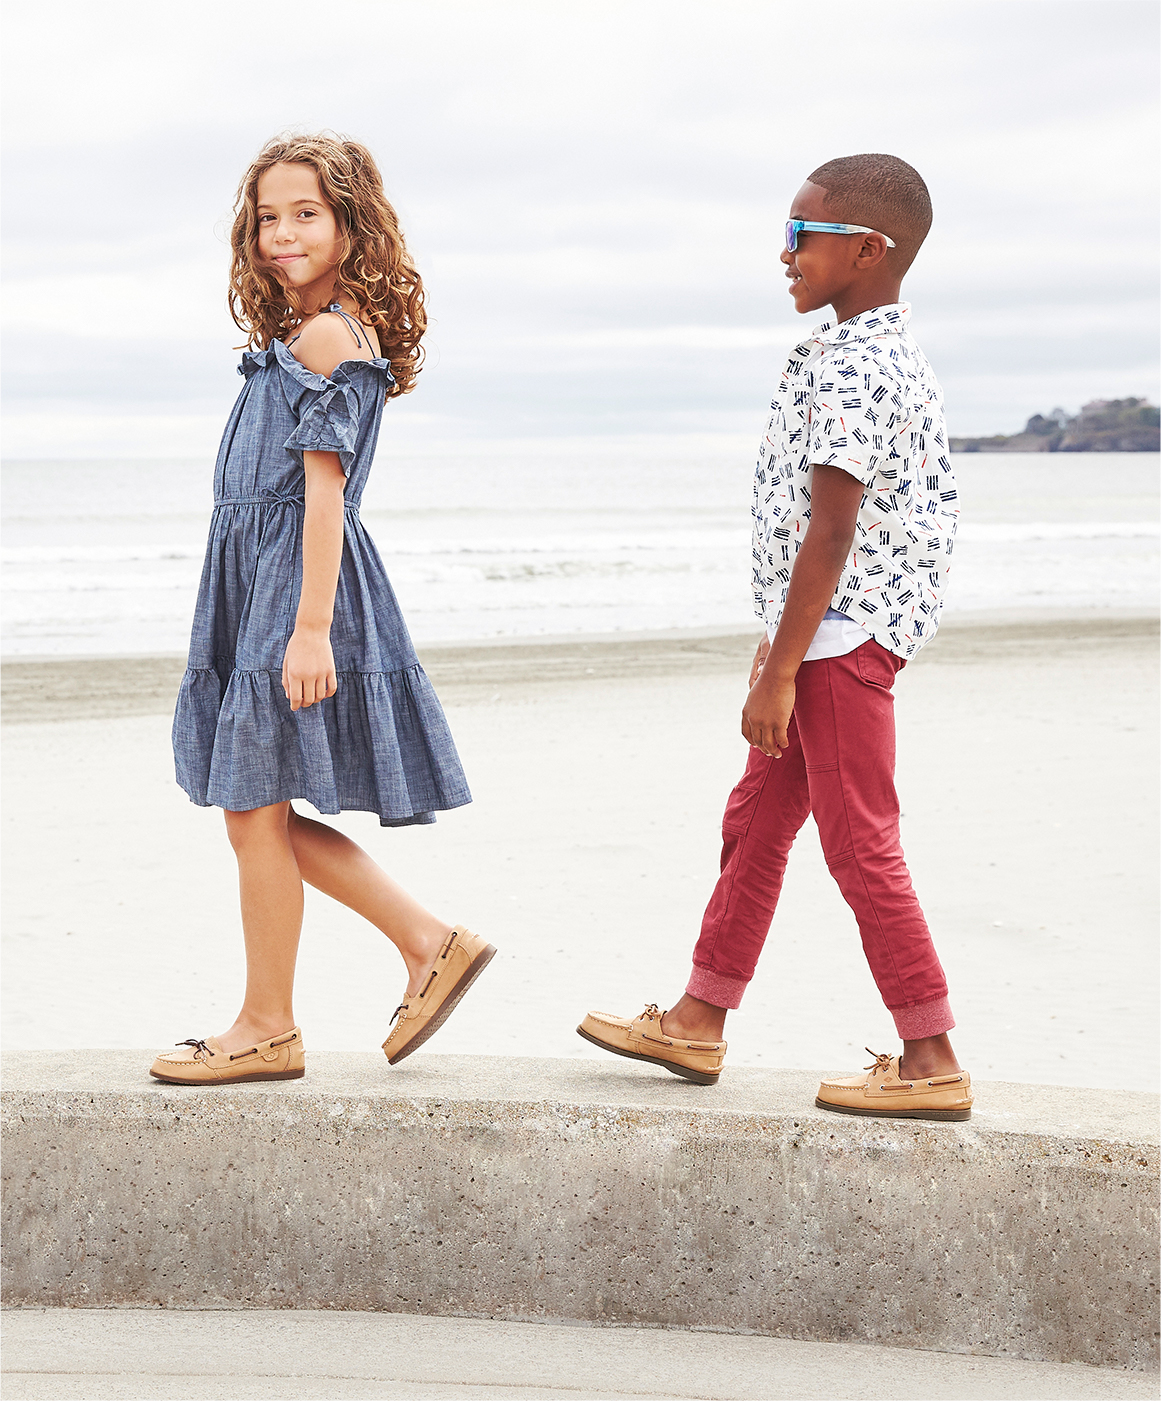 Kids walking while wearing Sperry boat shoes.